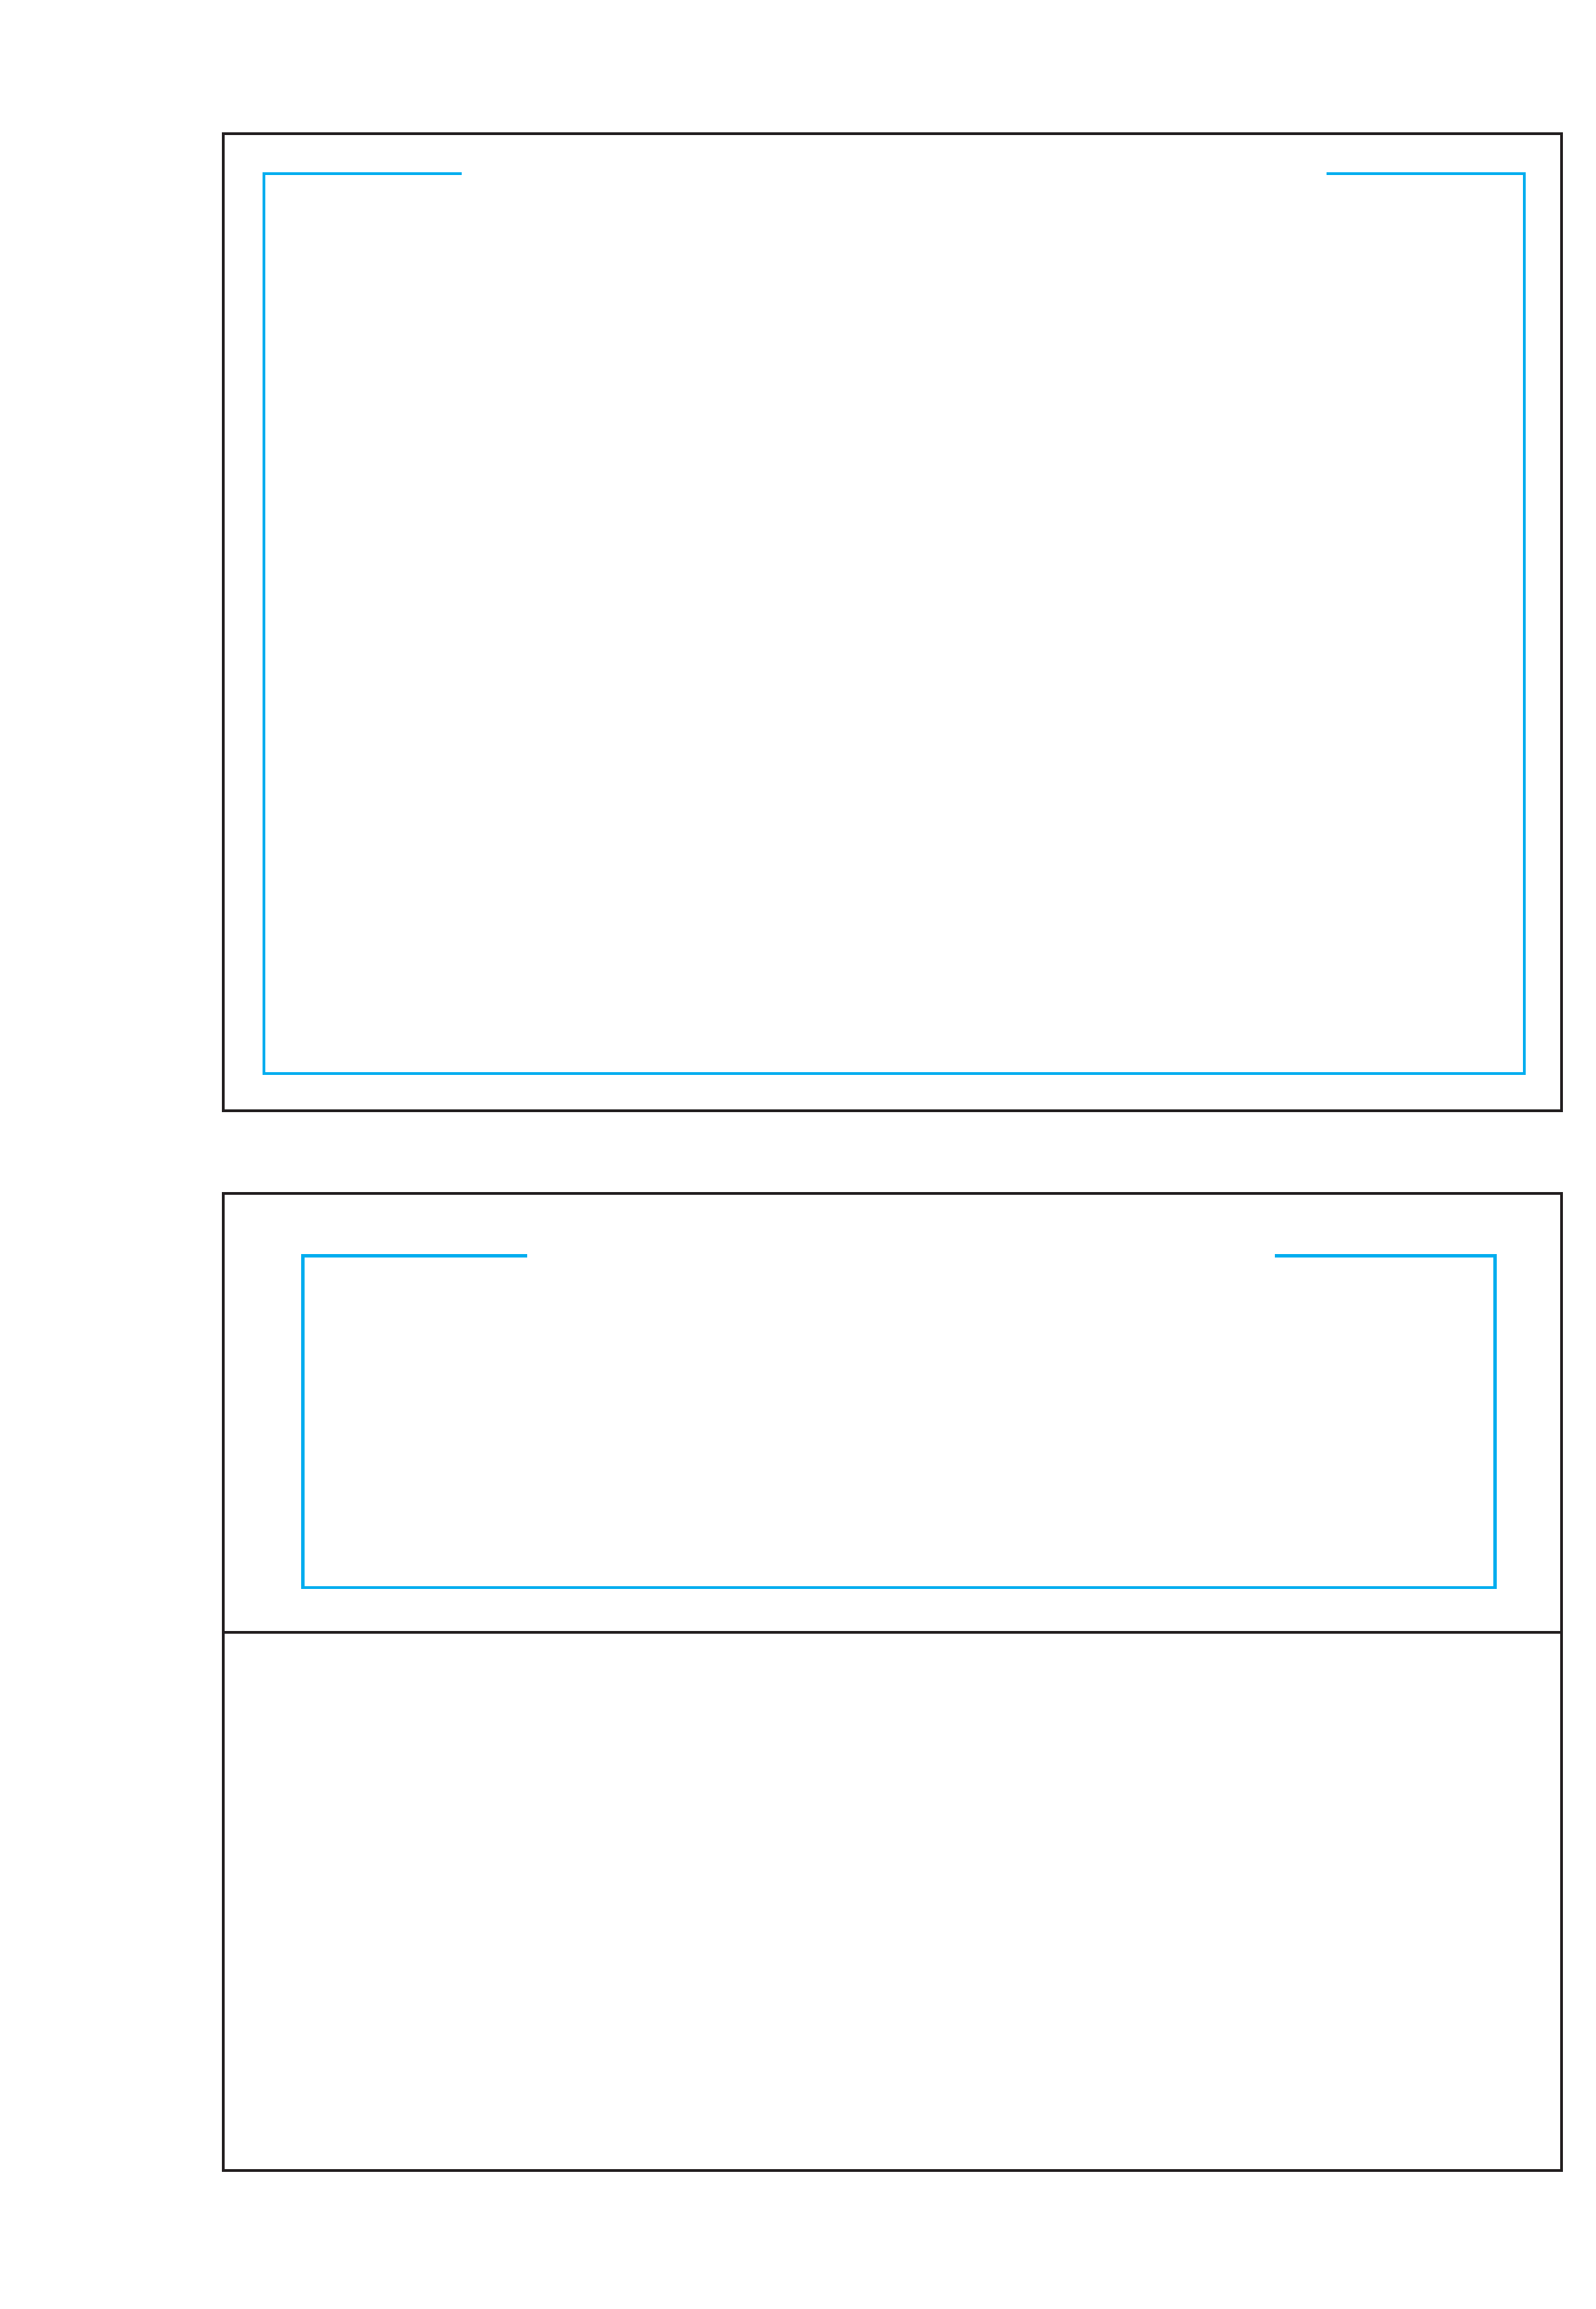 A6 Envelope Printing Template Free Download